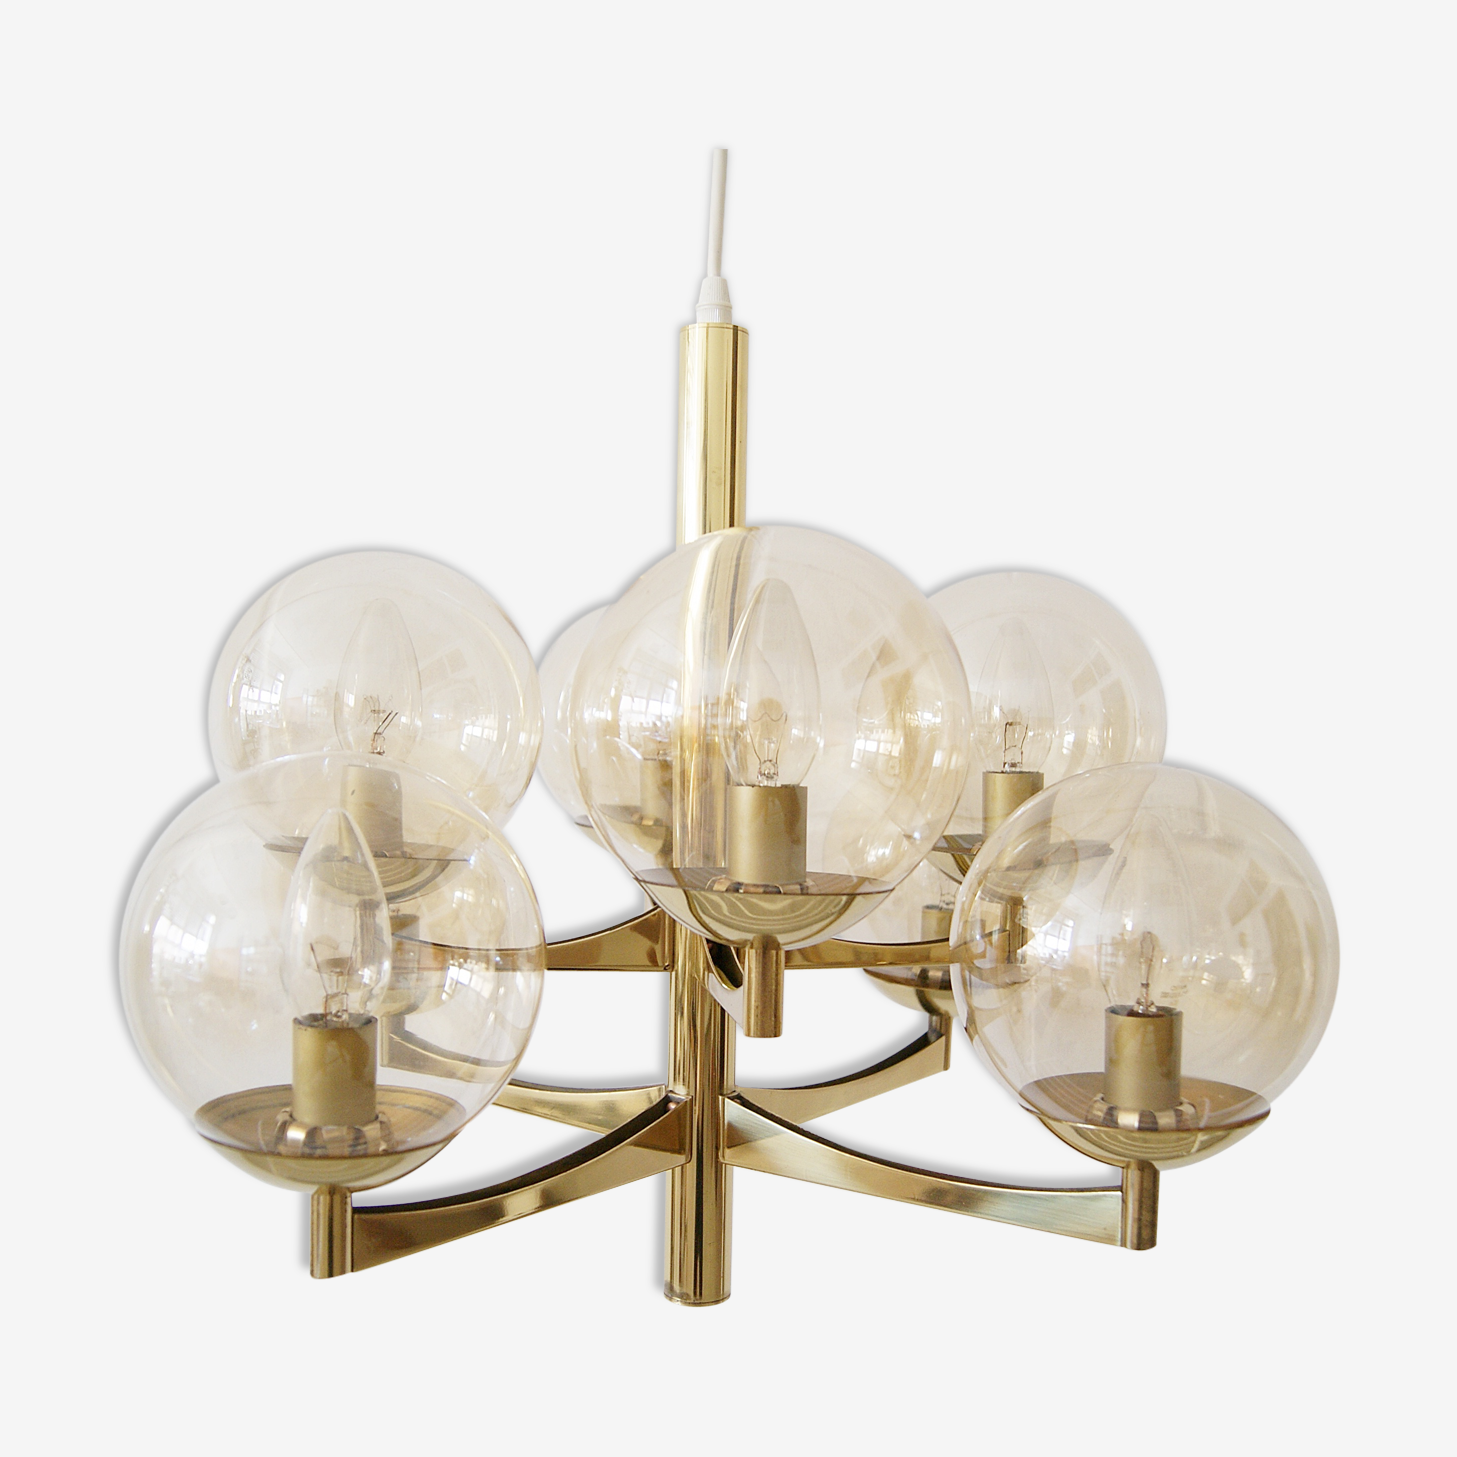 Brass chandeliers from Kaiser, Germany 1960